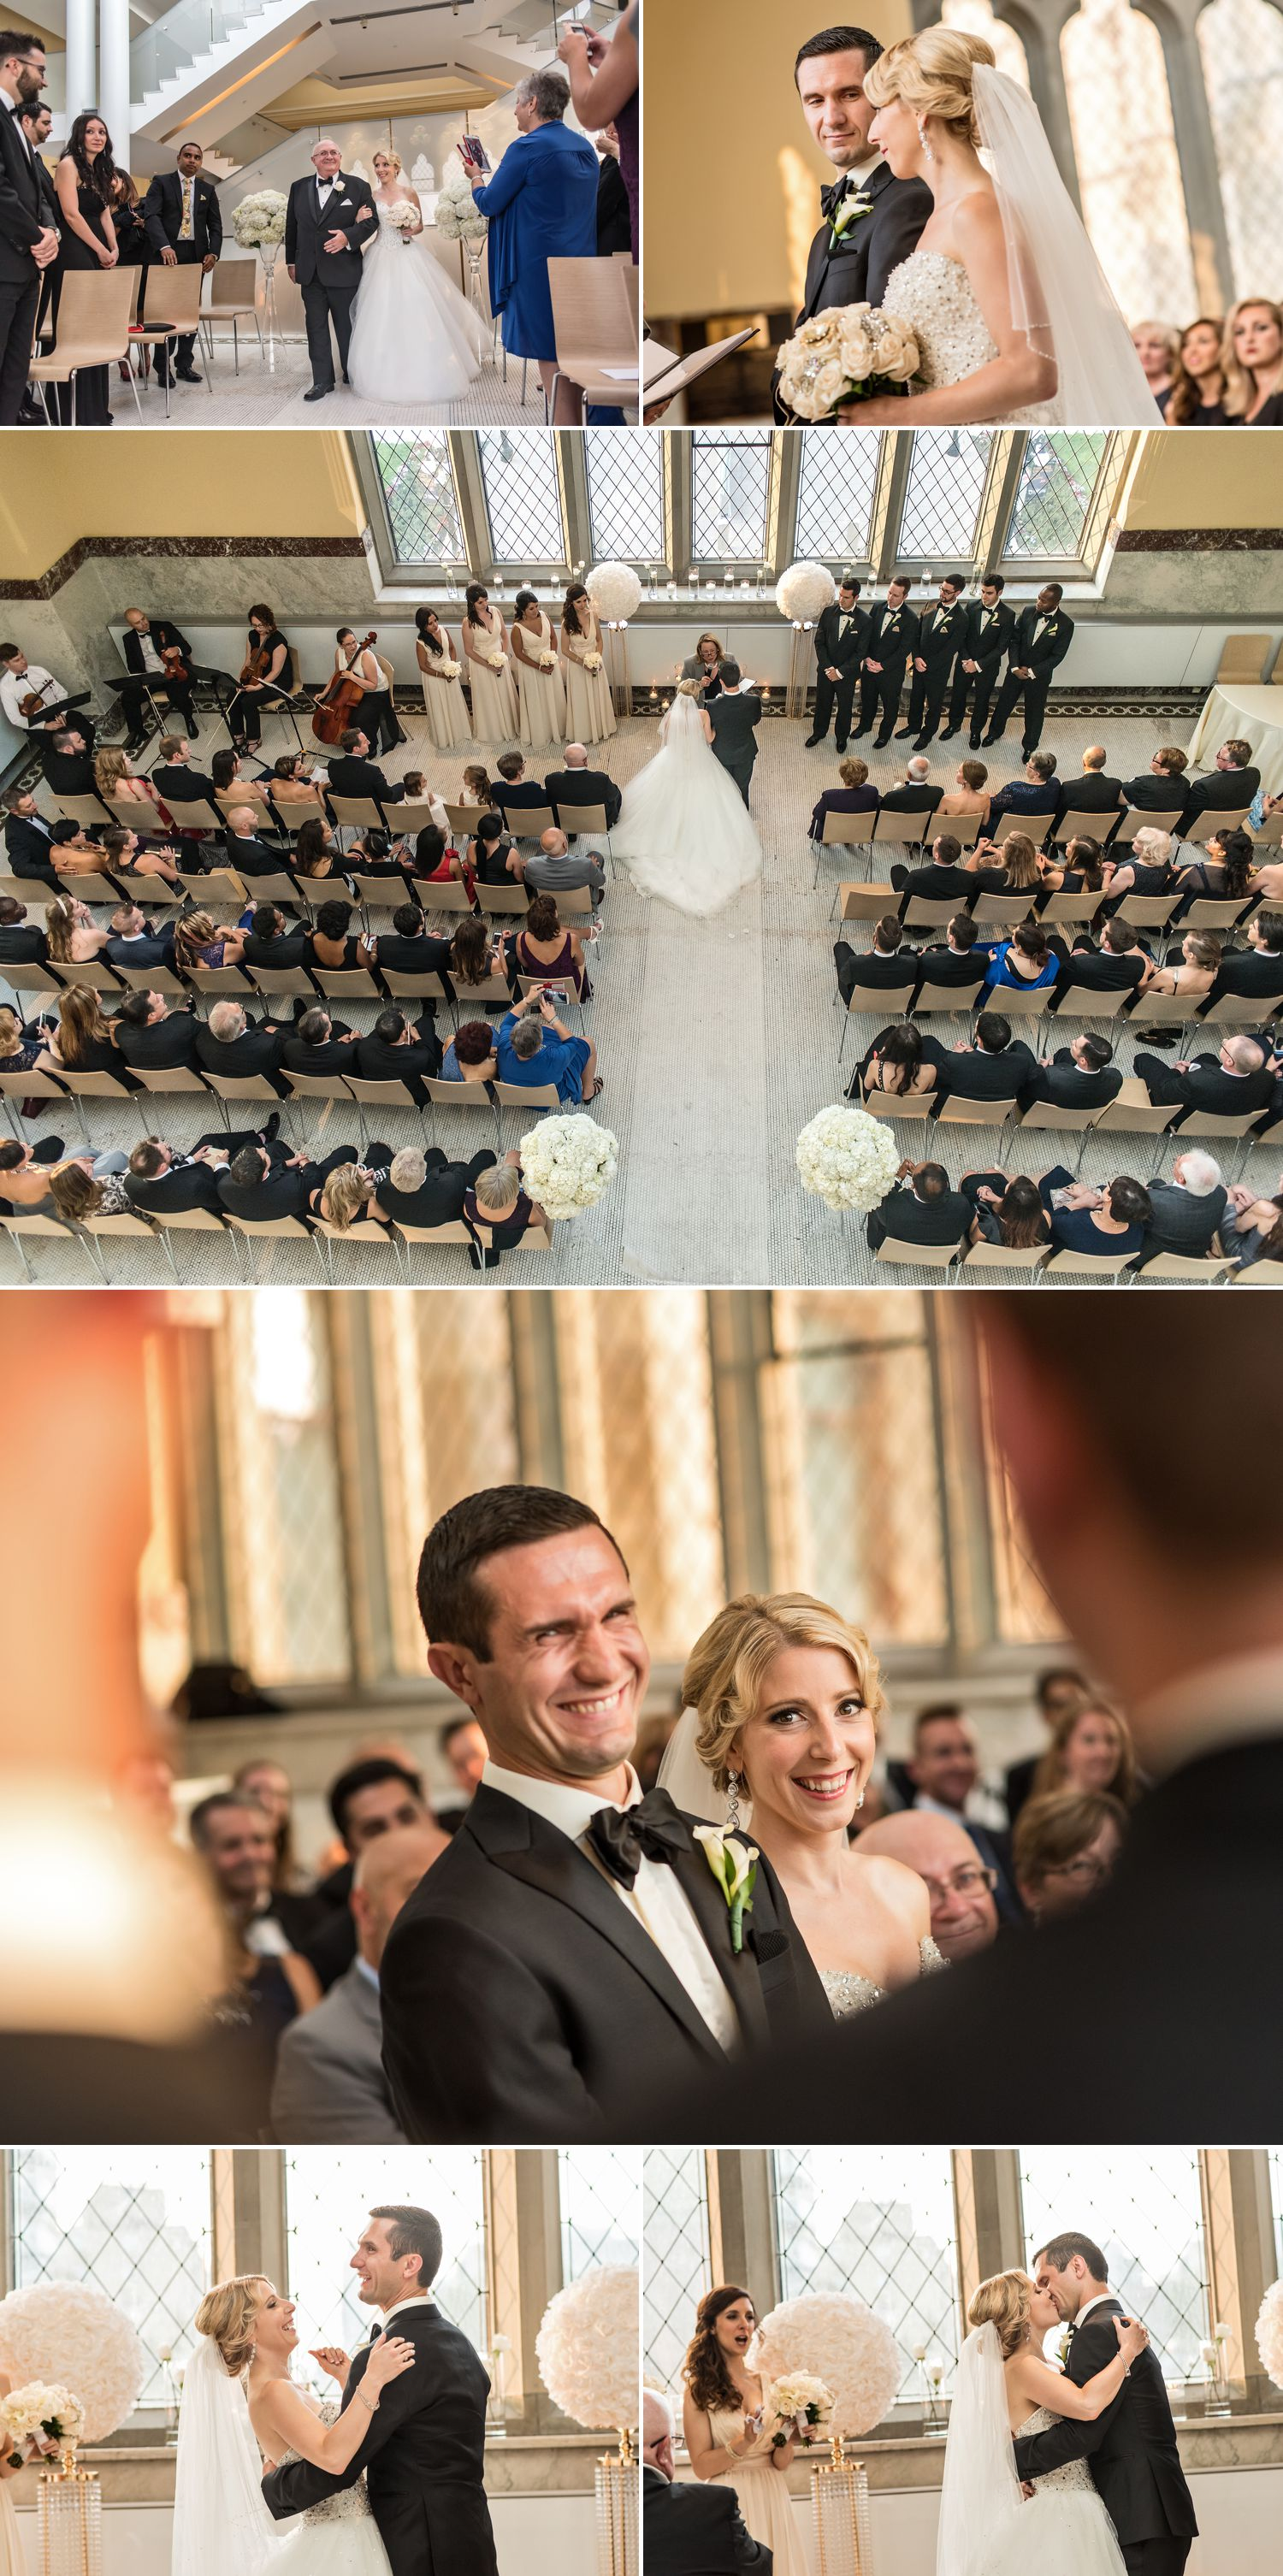 wedding-ceremony-held-at-the-museum-of-nature-ottawa